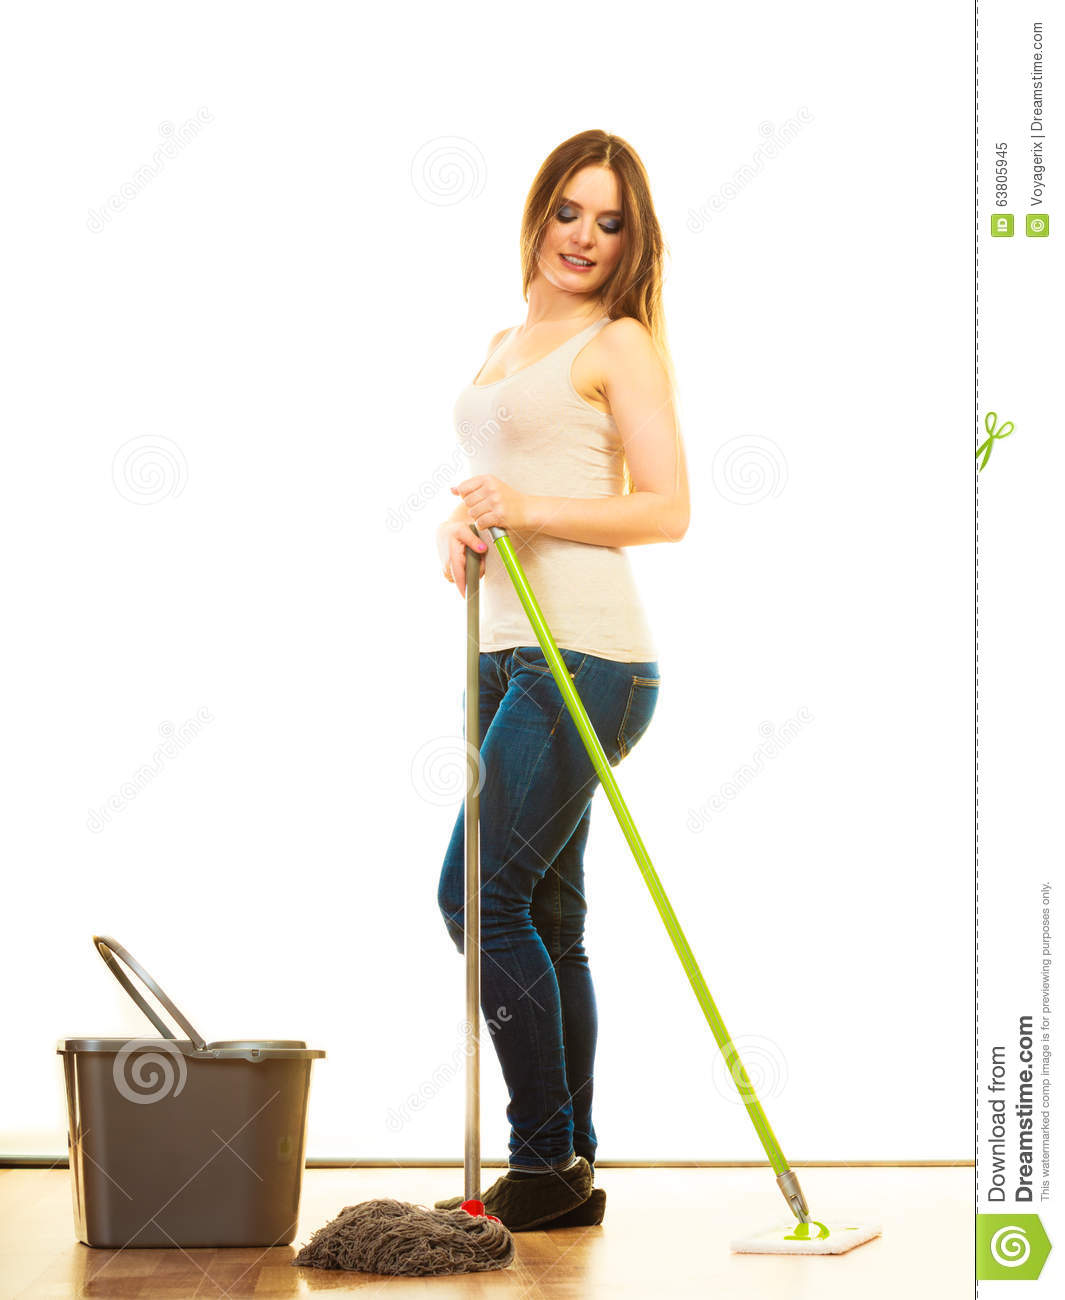 Sexy woman sweeping the floor with an old fashioned witch type broom stock photo